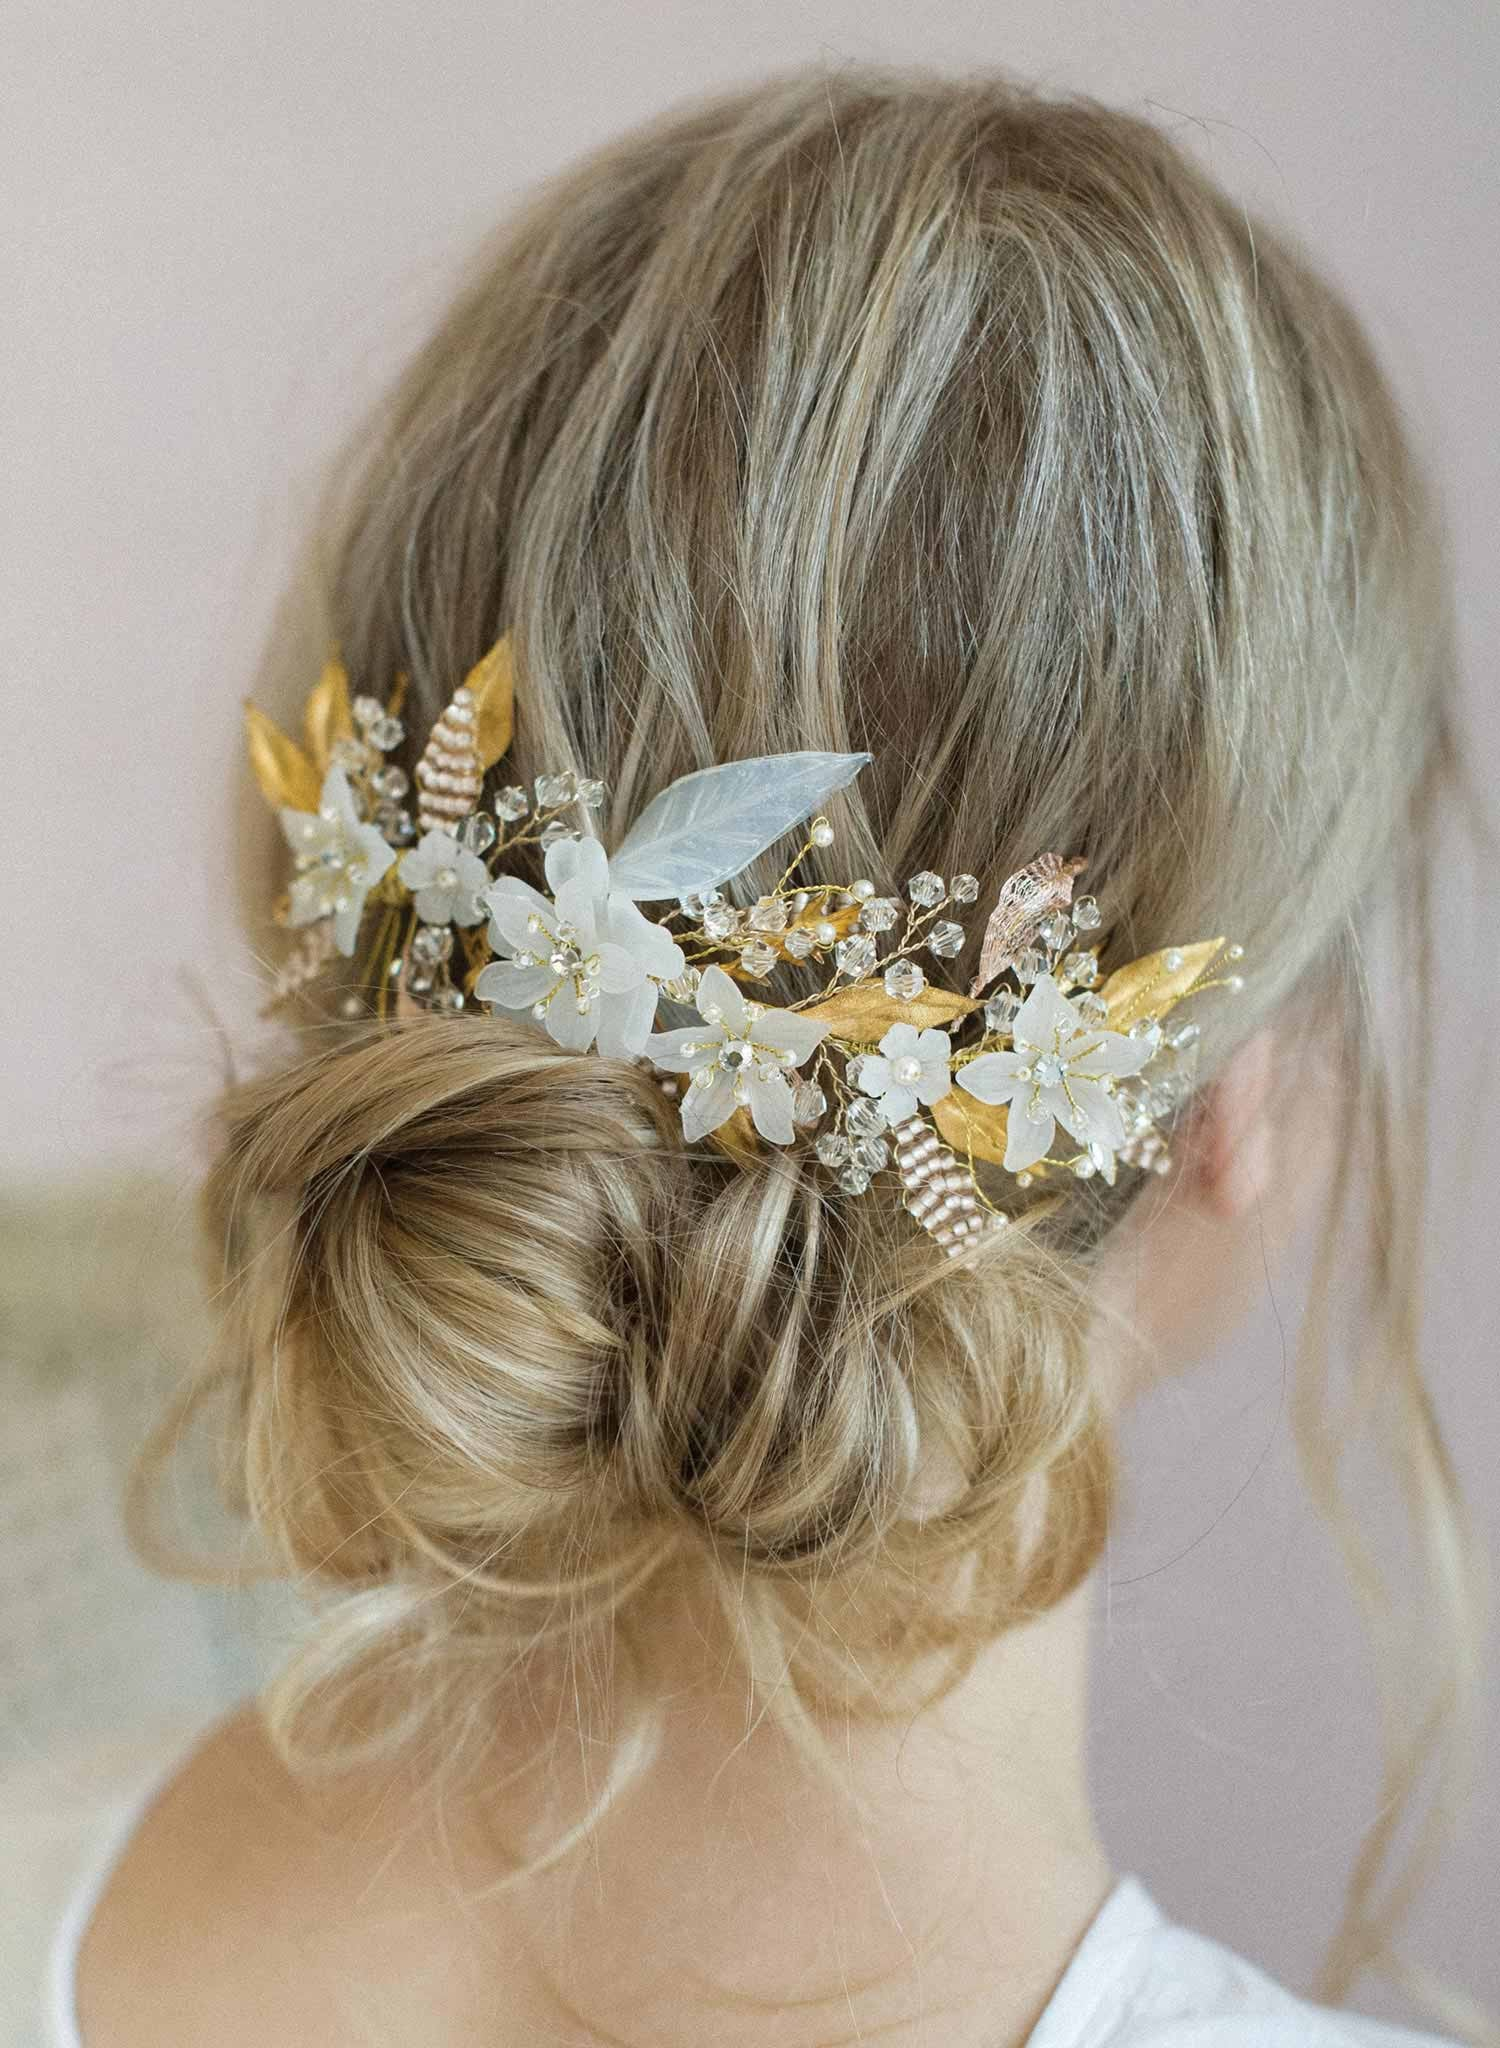 Br Bridal Headpieces Twigs And Honey - Sugary sweet headpiece bridal headpiece hair adornment wedding headpiece twigs and honey